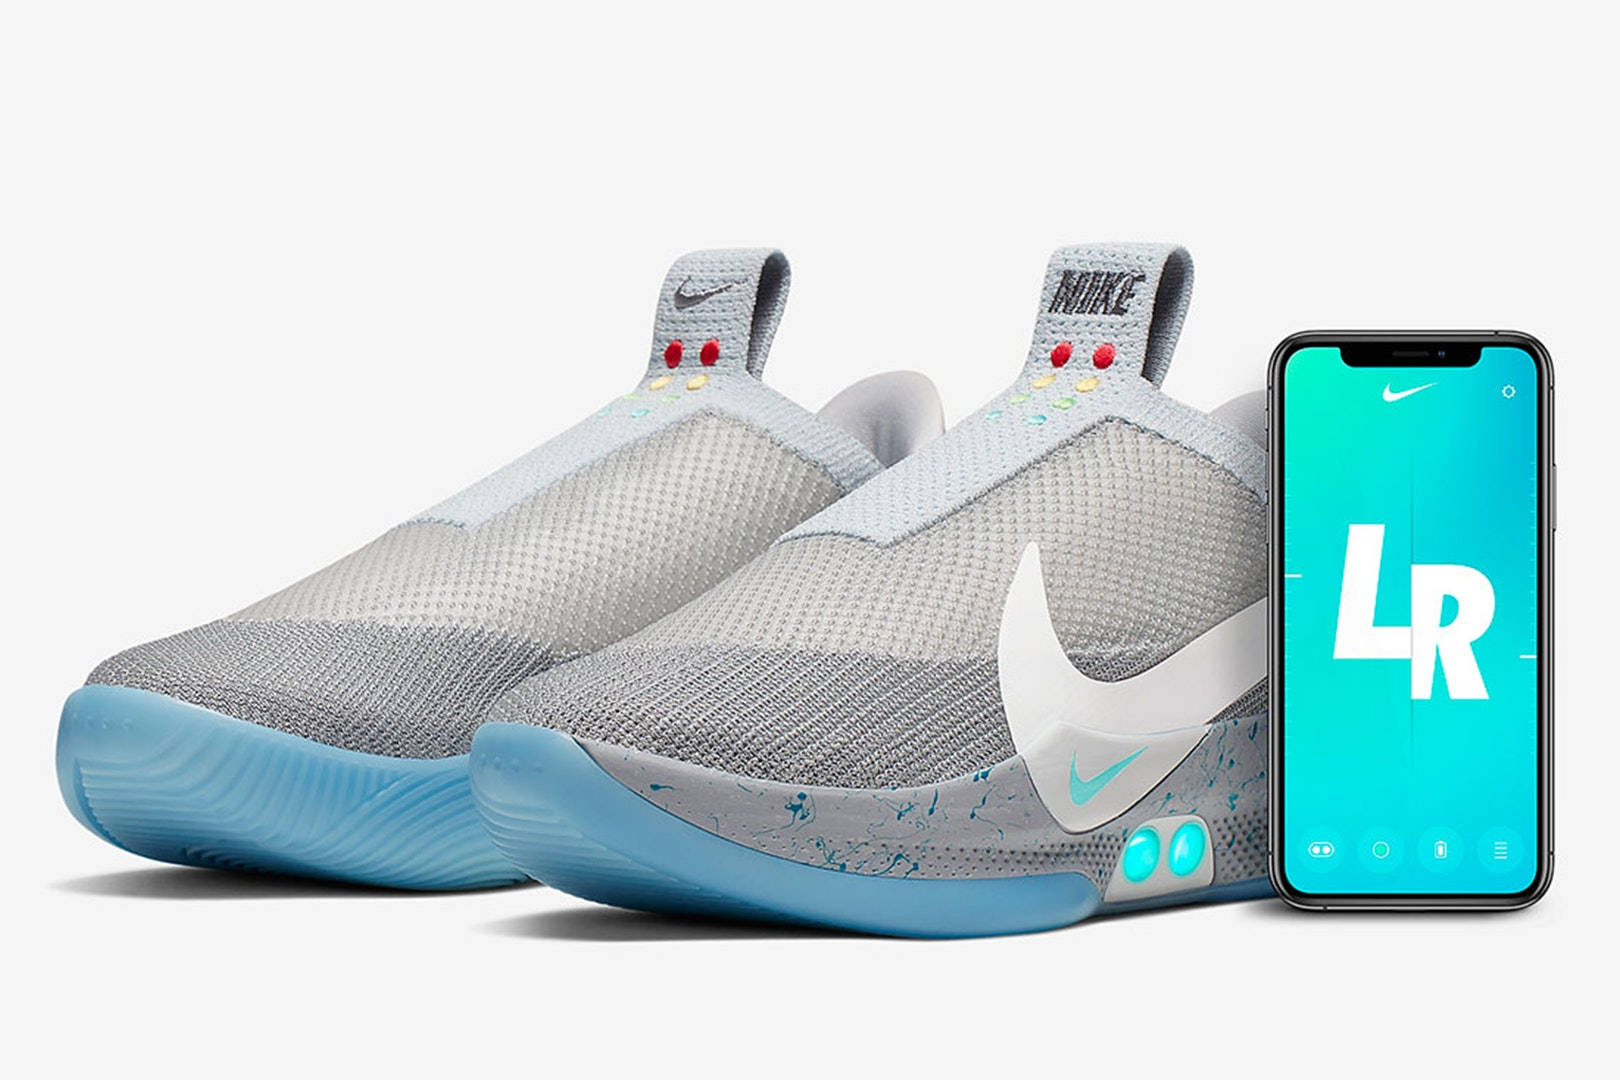 Observar curva Inapropiado  Nike Launches 'Back to the Future' Self-Lacing Sneakers // ONE37pm